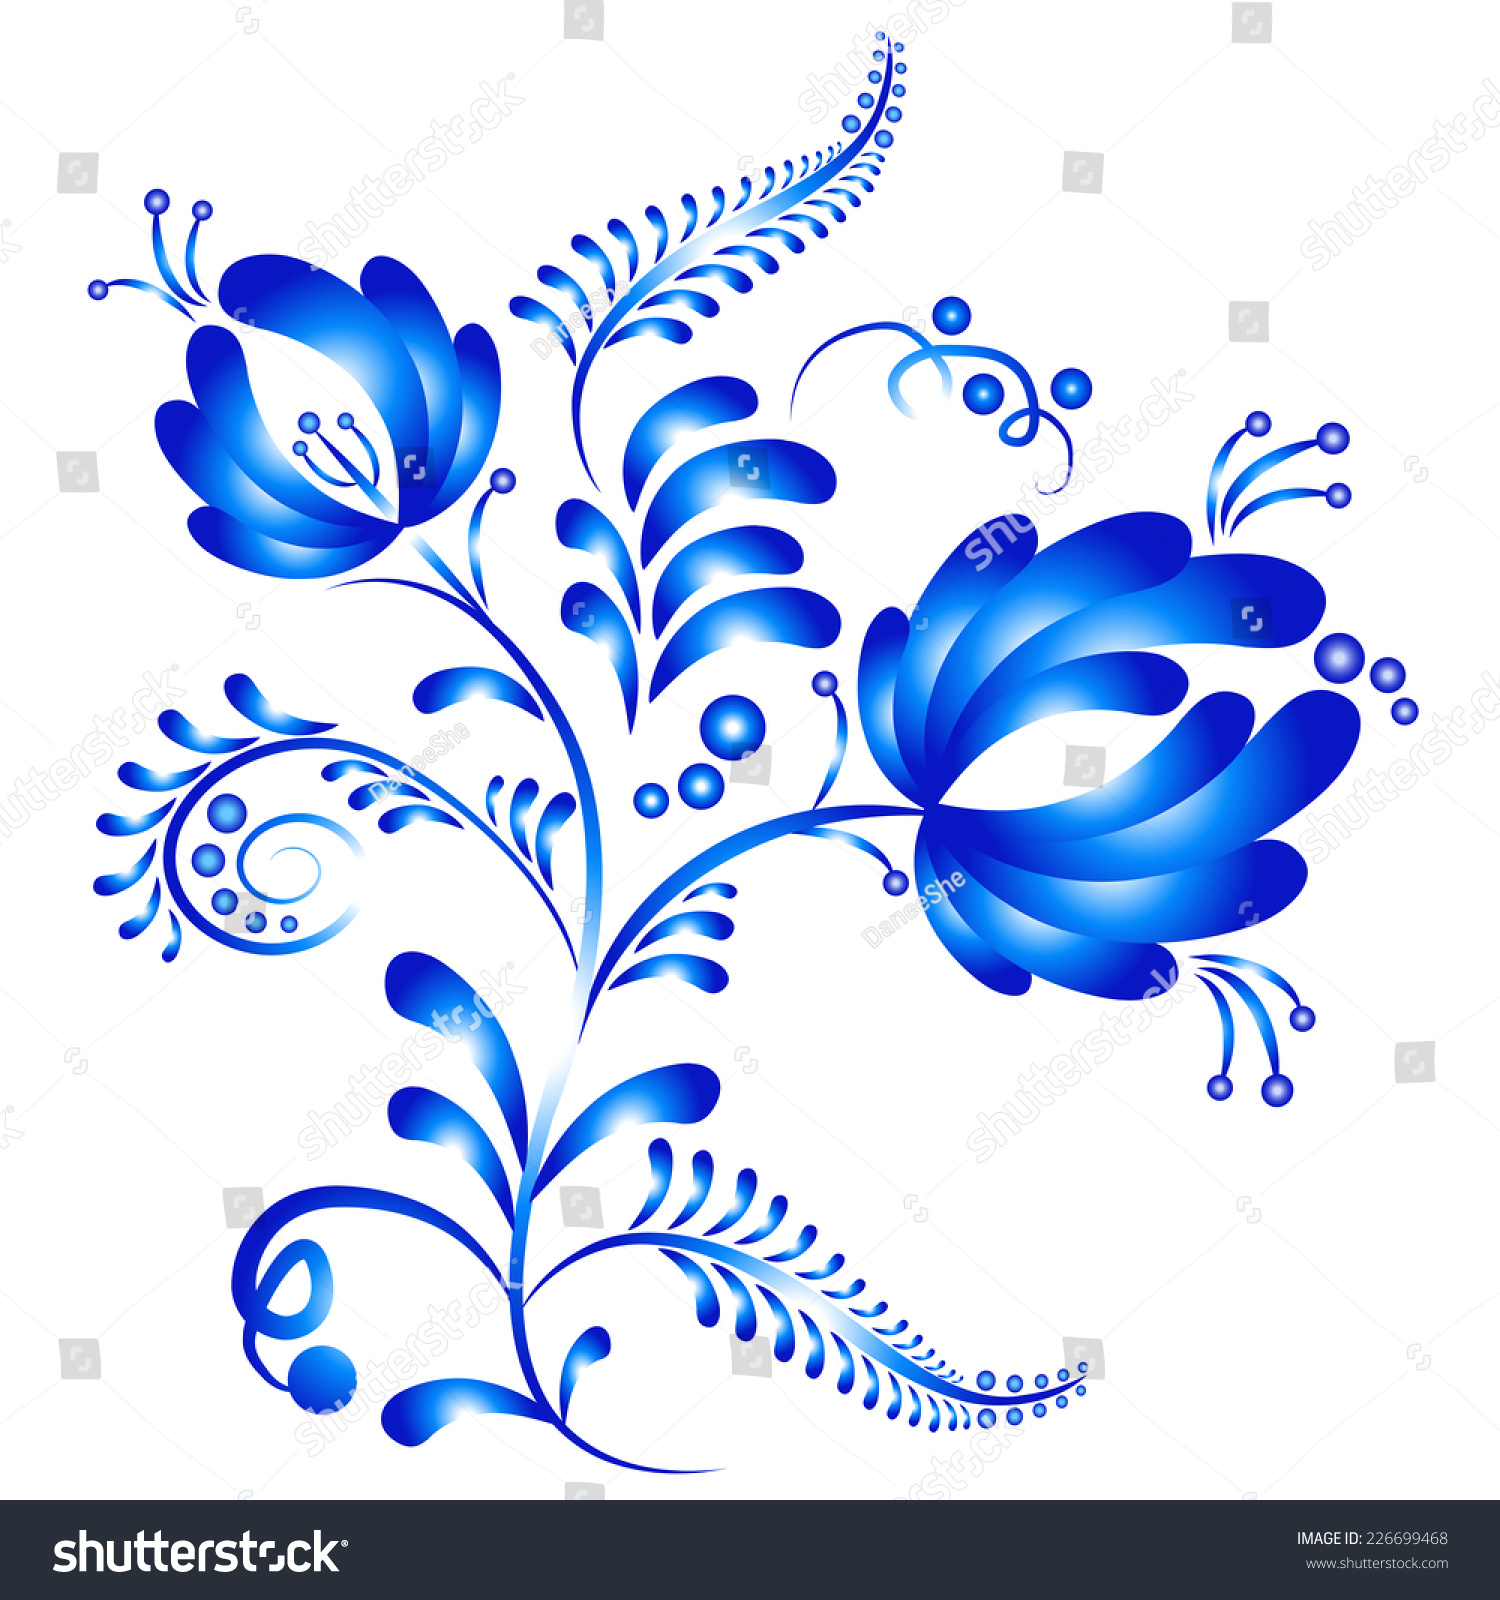 Artistic floral element abstract gzhel folk art blue flowers stock - Floral Ornament In Gzhel Style Russian Folklore Blue Gzhel Flowers Isolated On White